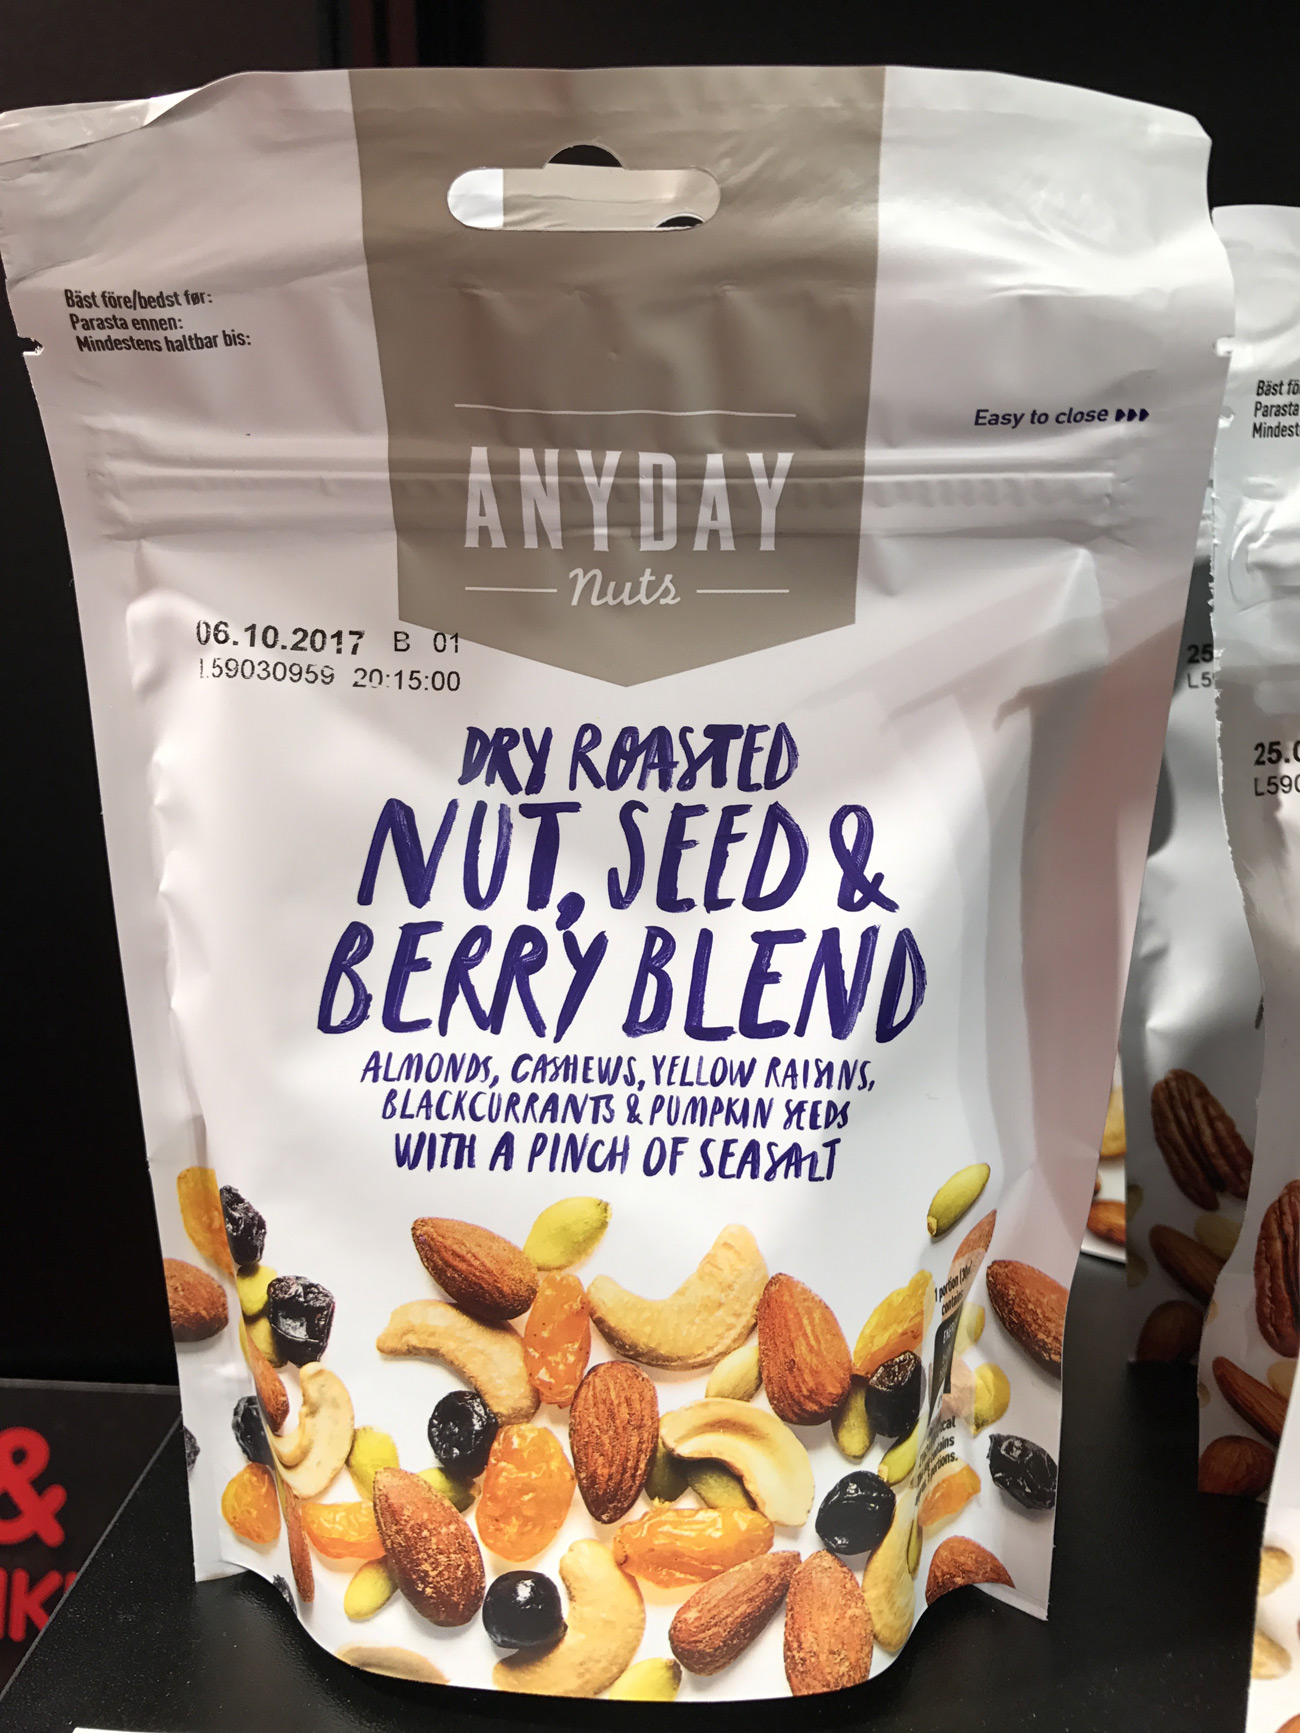 Anyday Nuts